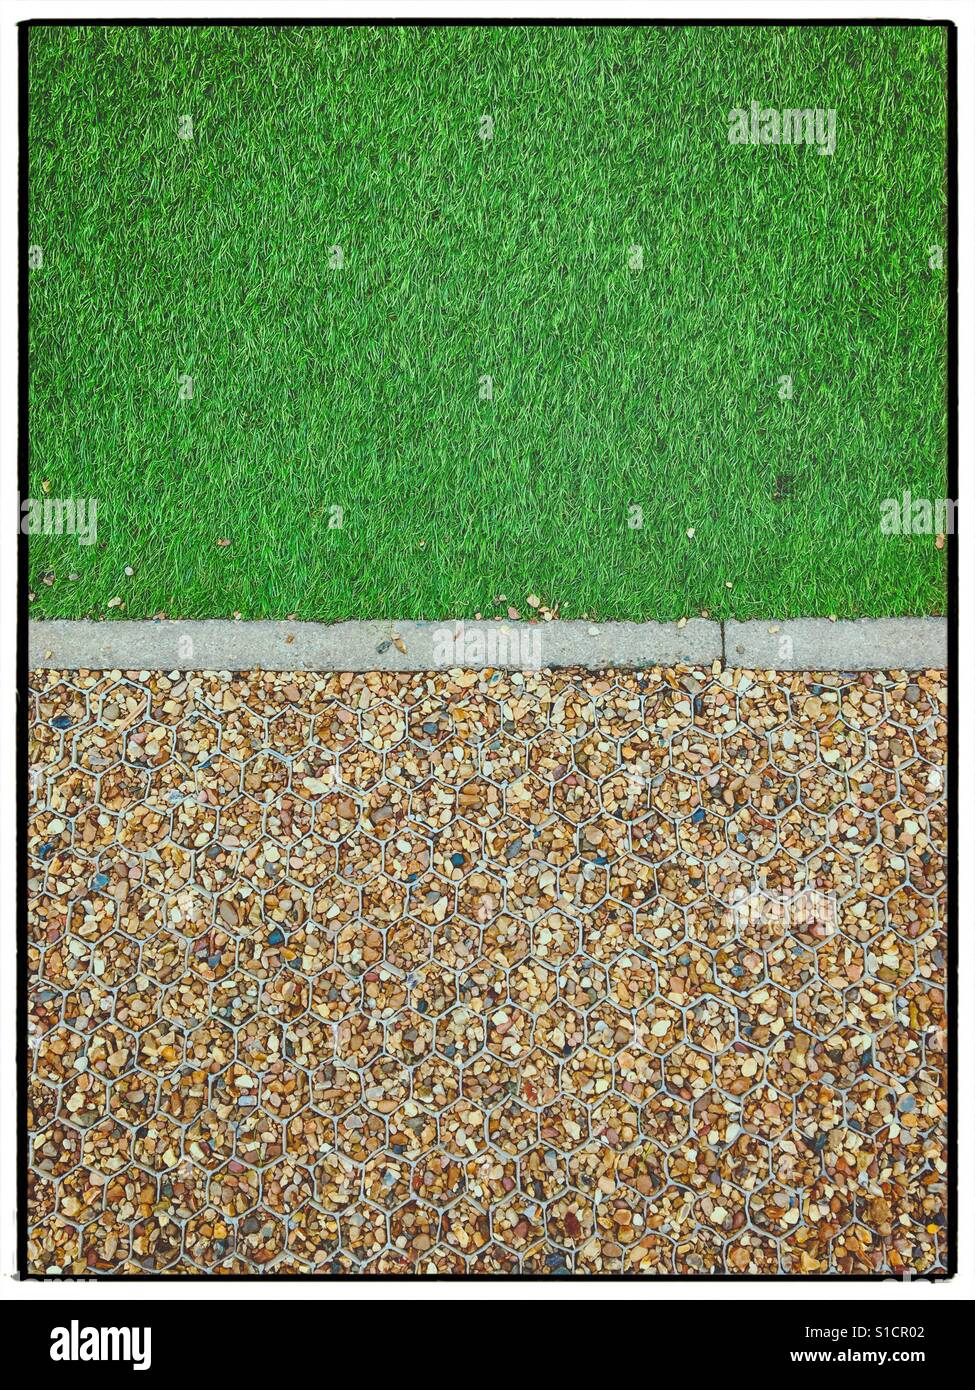 Astro turf and gravel - Stock Image